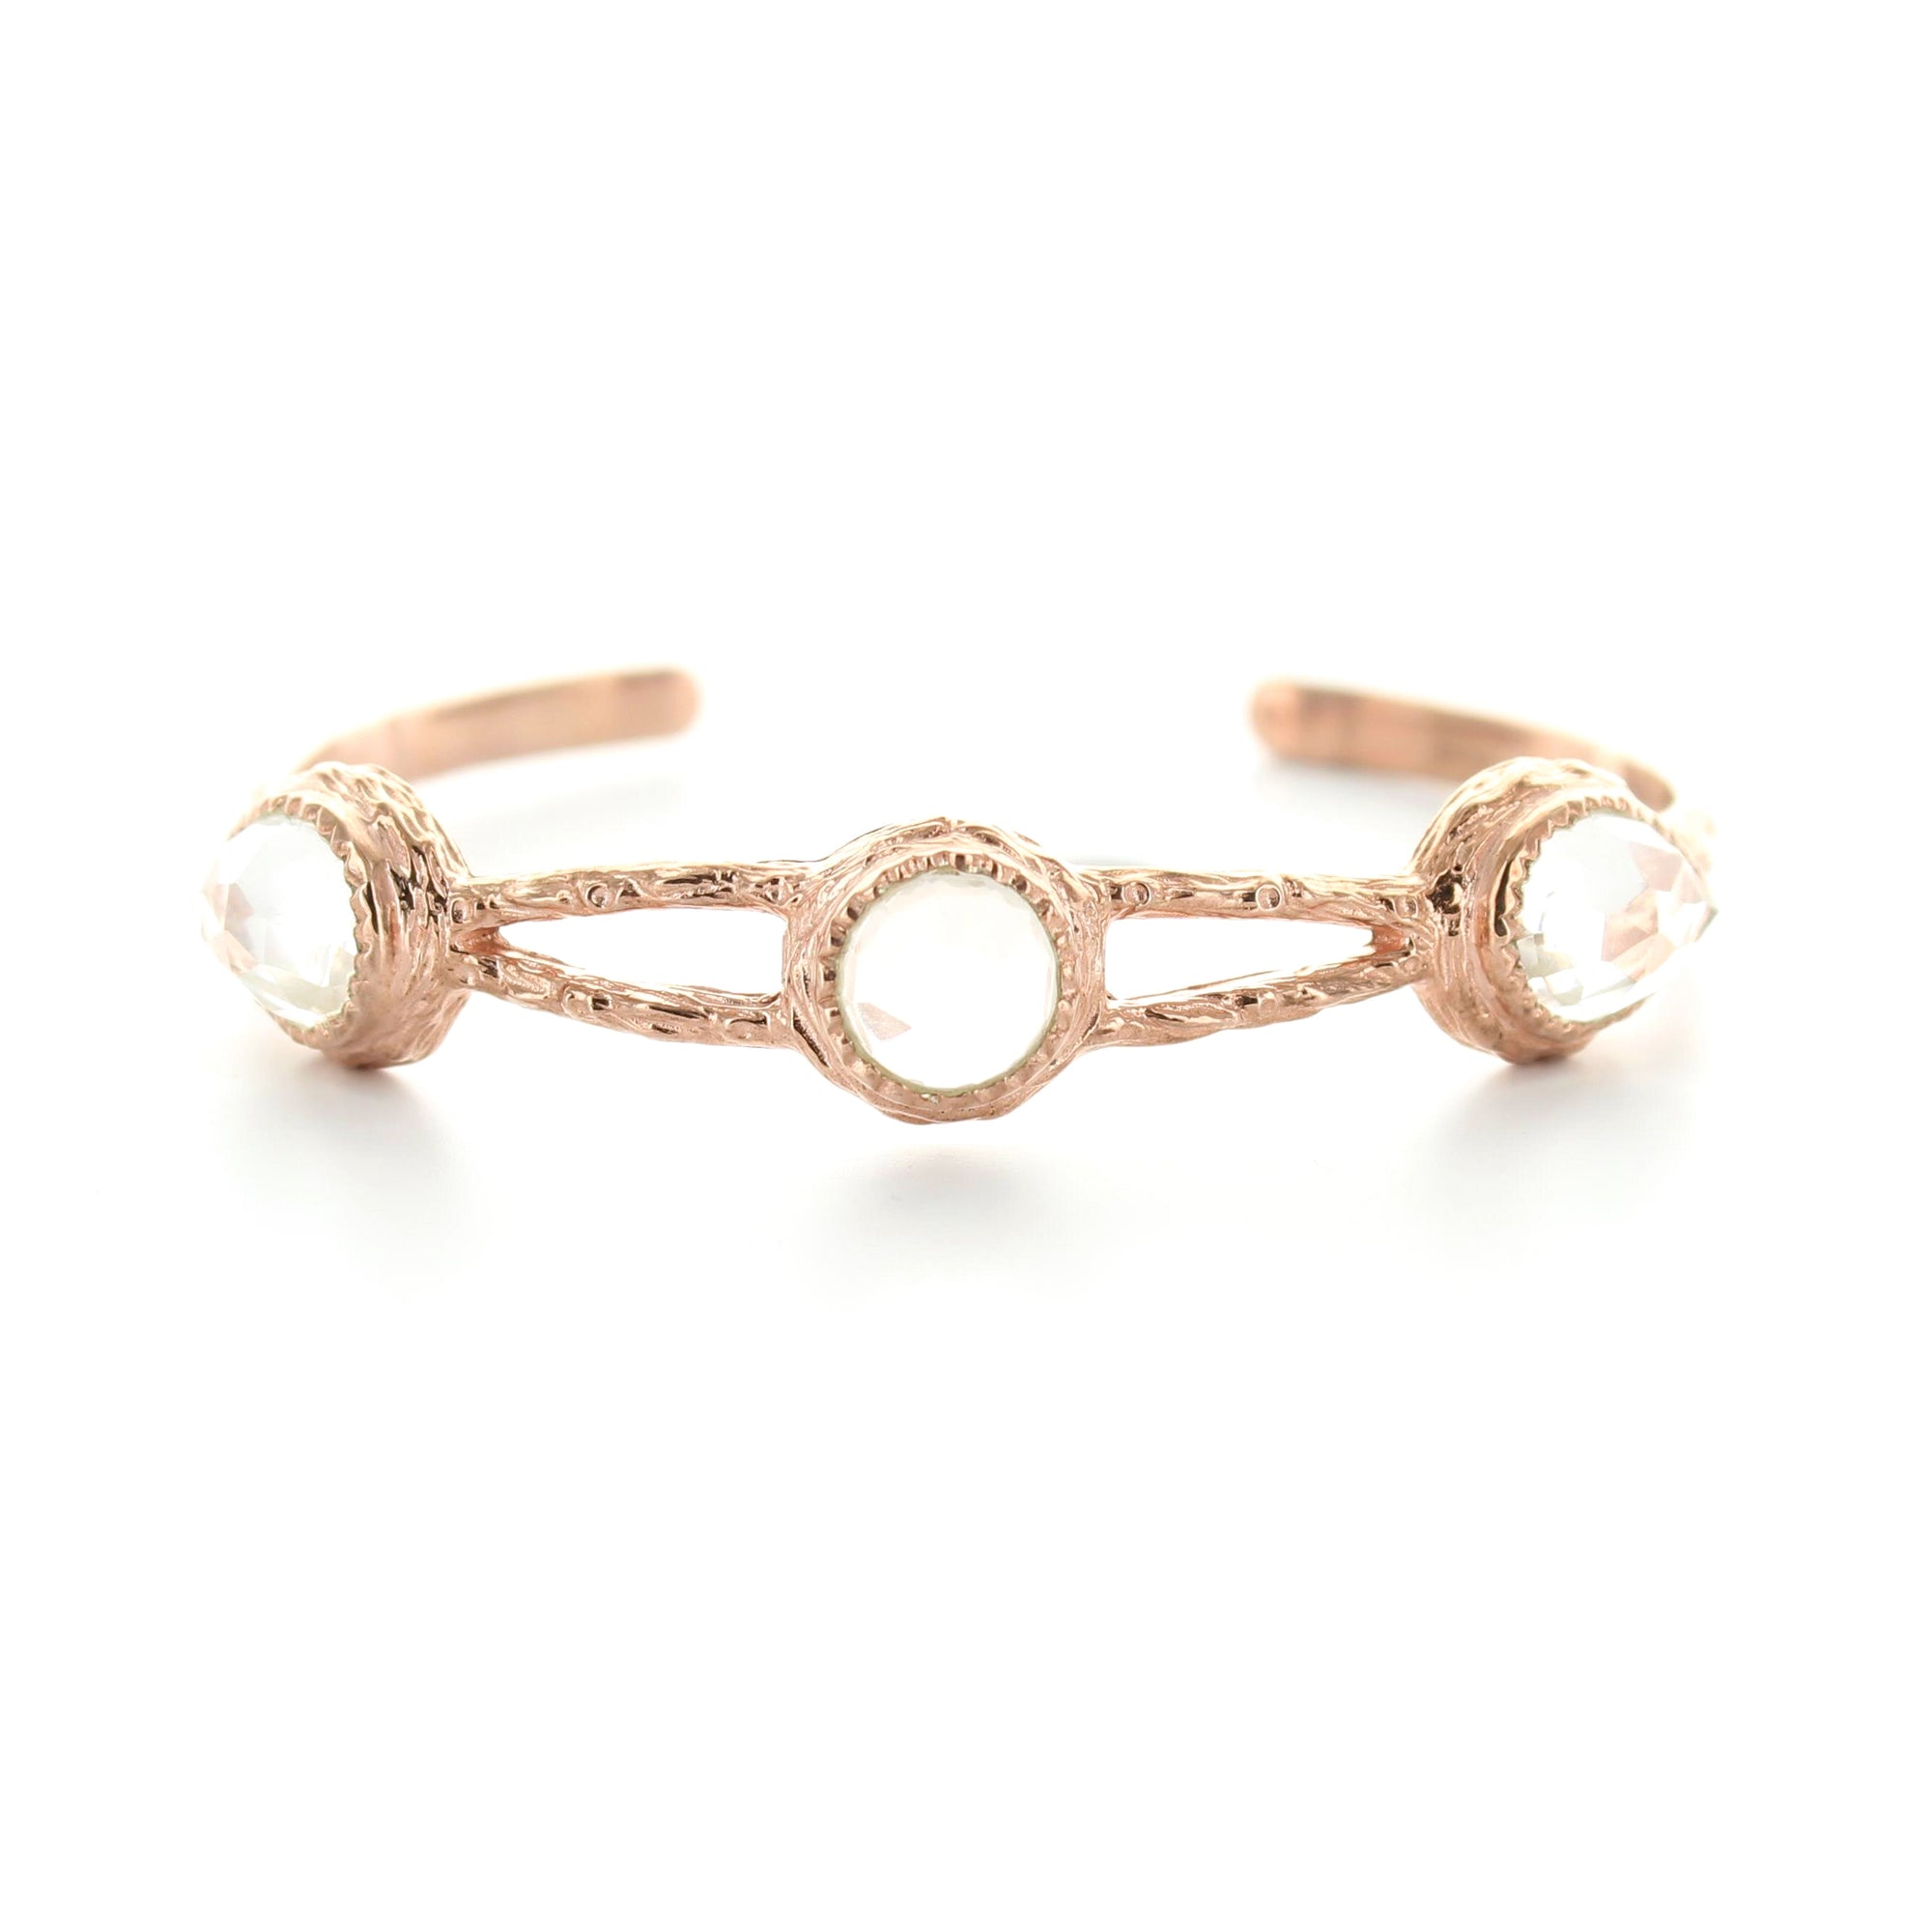 ADORE LINKED CUFF - ROCK CRYSTAL & ROSE GOLD